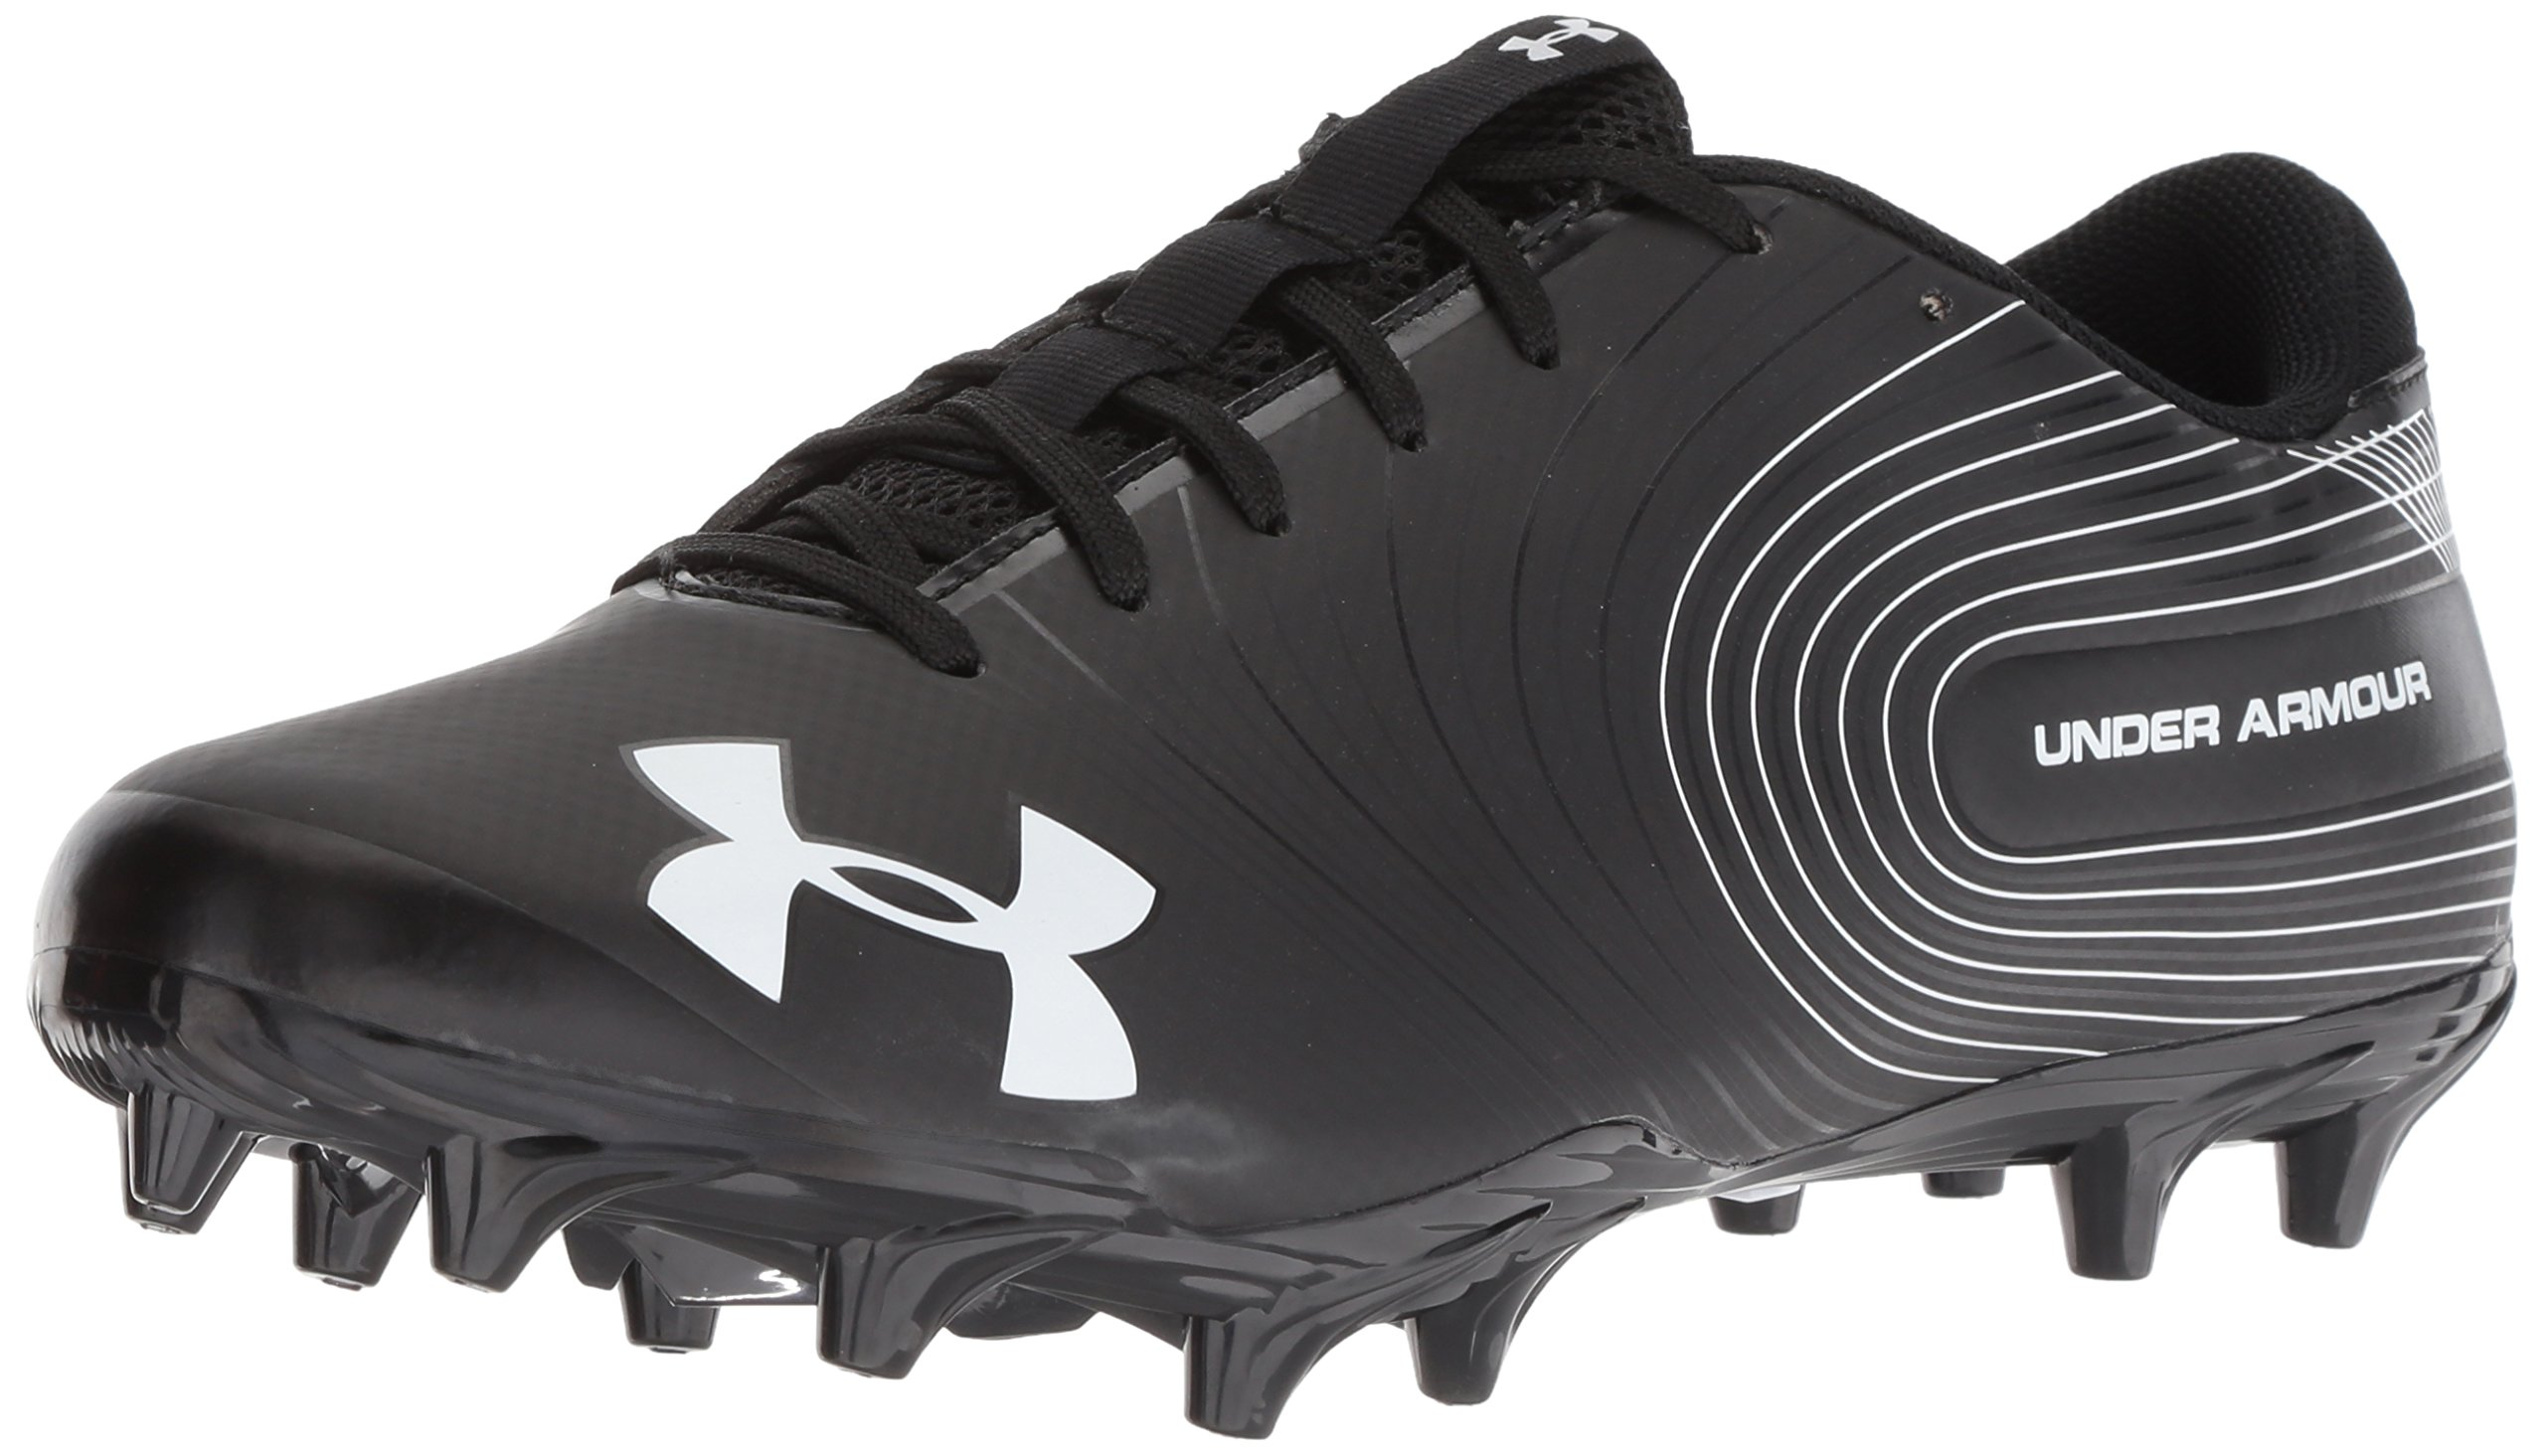 Under Armour Men's Speed Phantom MC Football Shoe, Black (001)/White, 13 by Under Armour